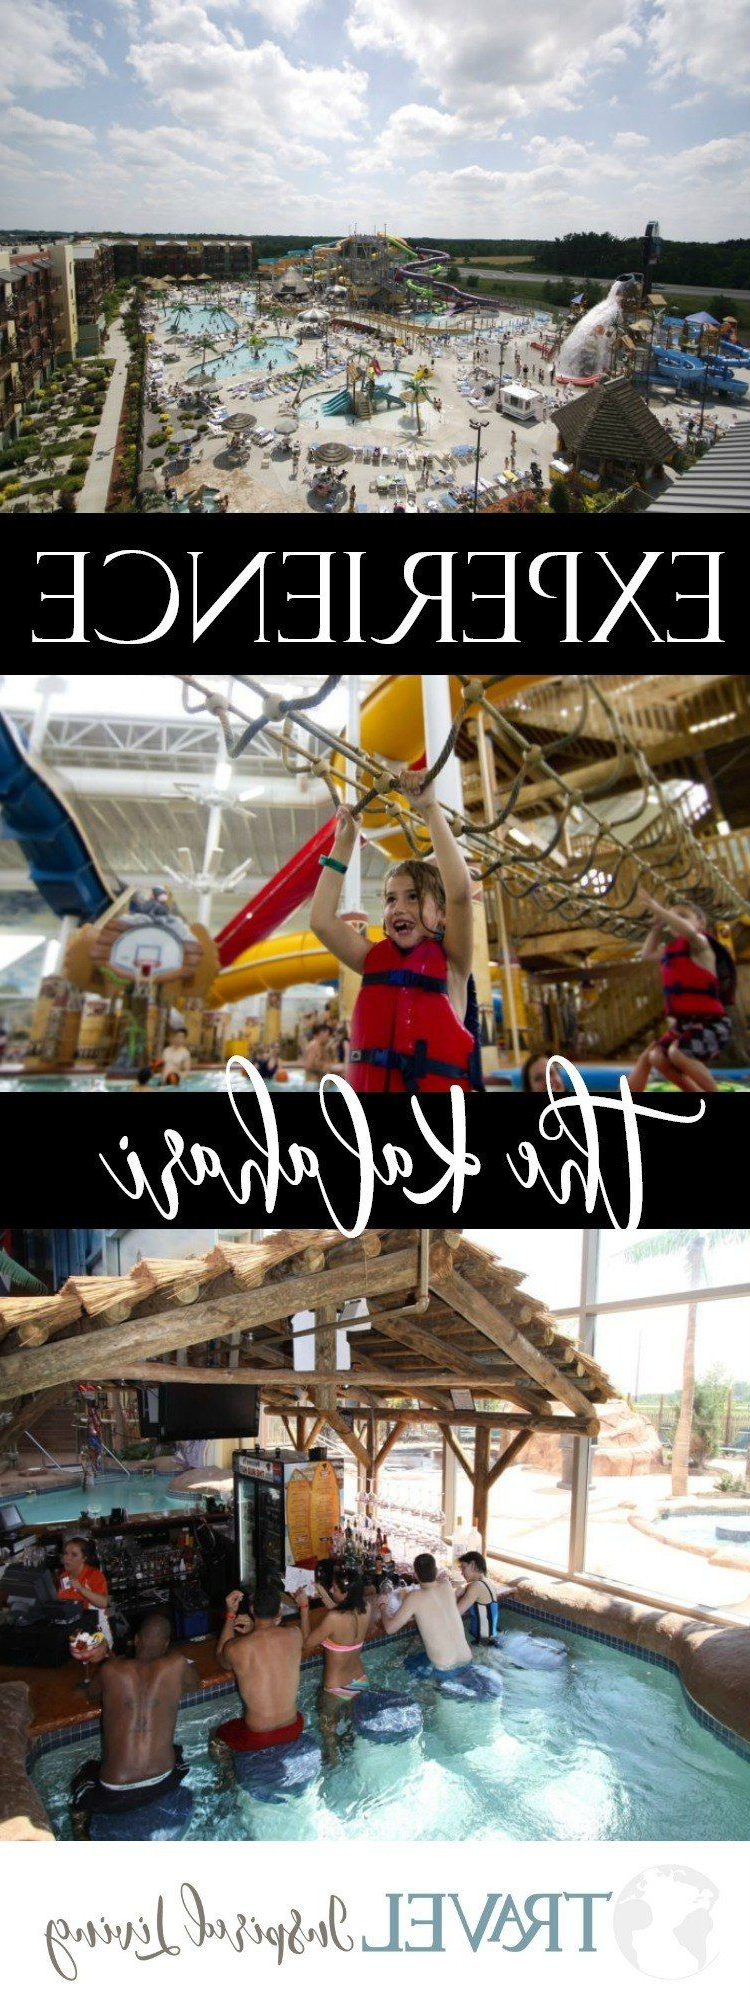 Visit The Kalahari Resorts In Sandusky Ohio For A Fun